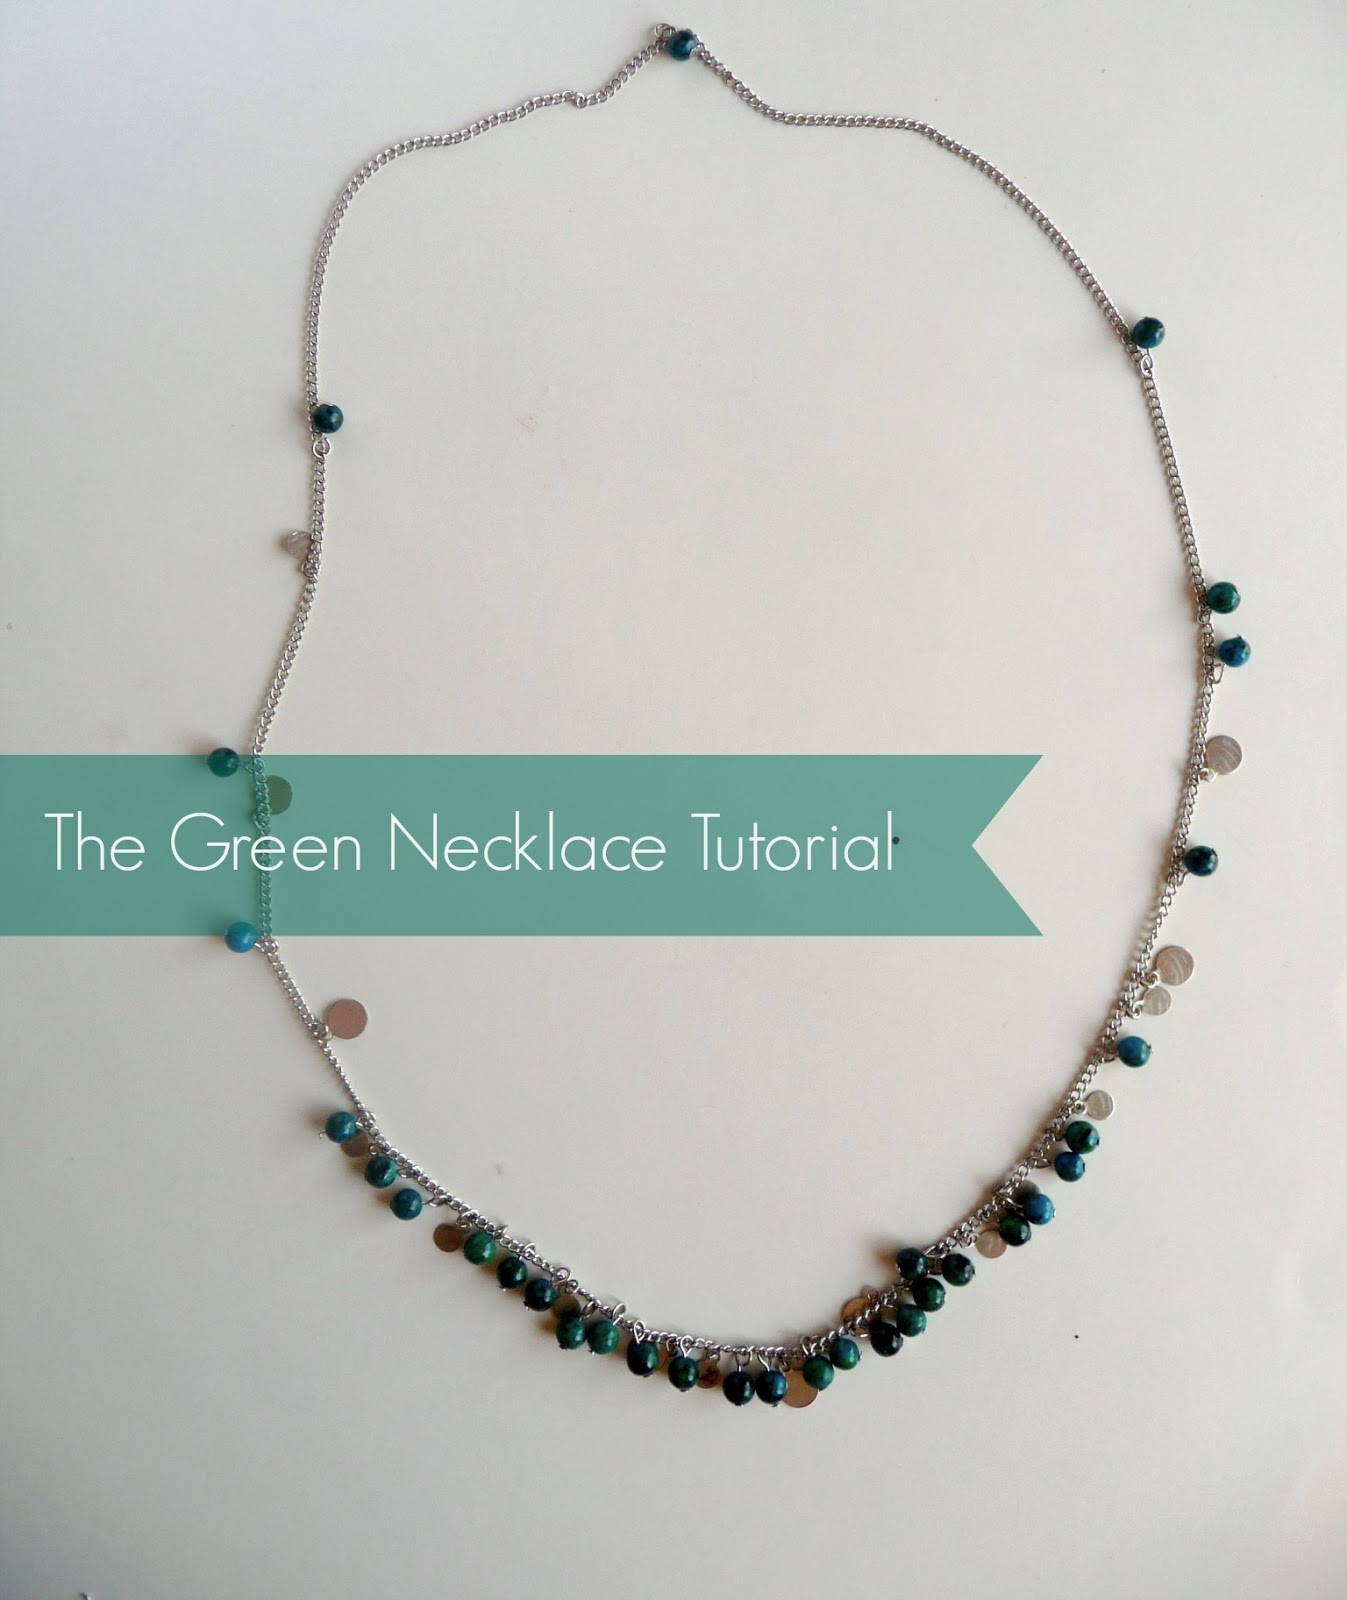 http://www.domesticblisssquared.com/2013/07/the-green-necklace-tutorial.html